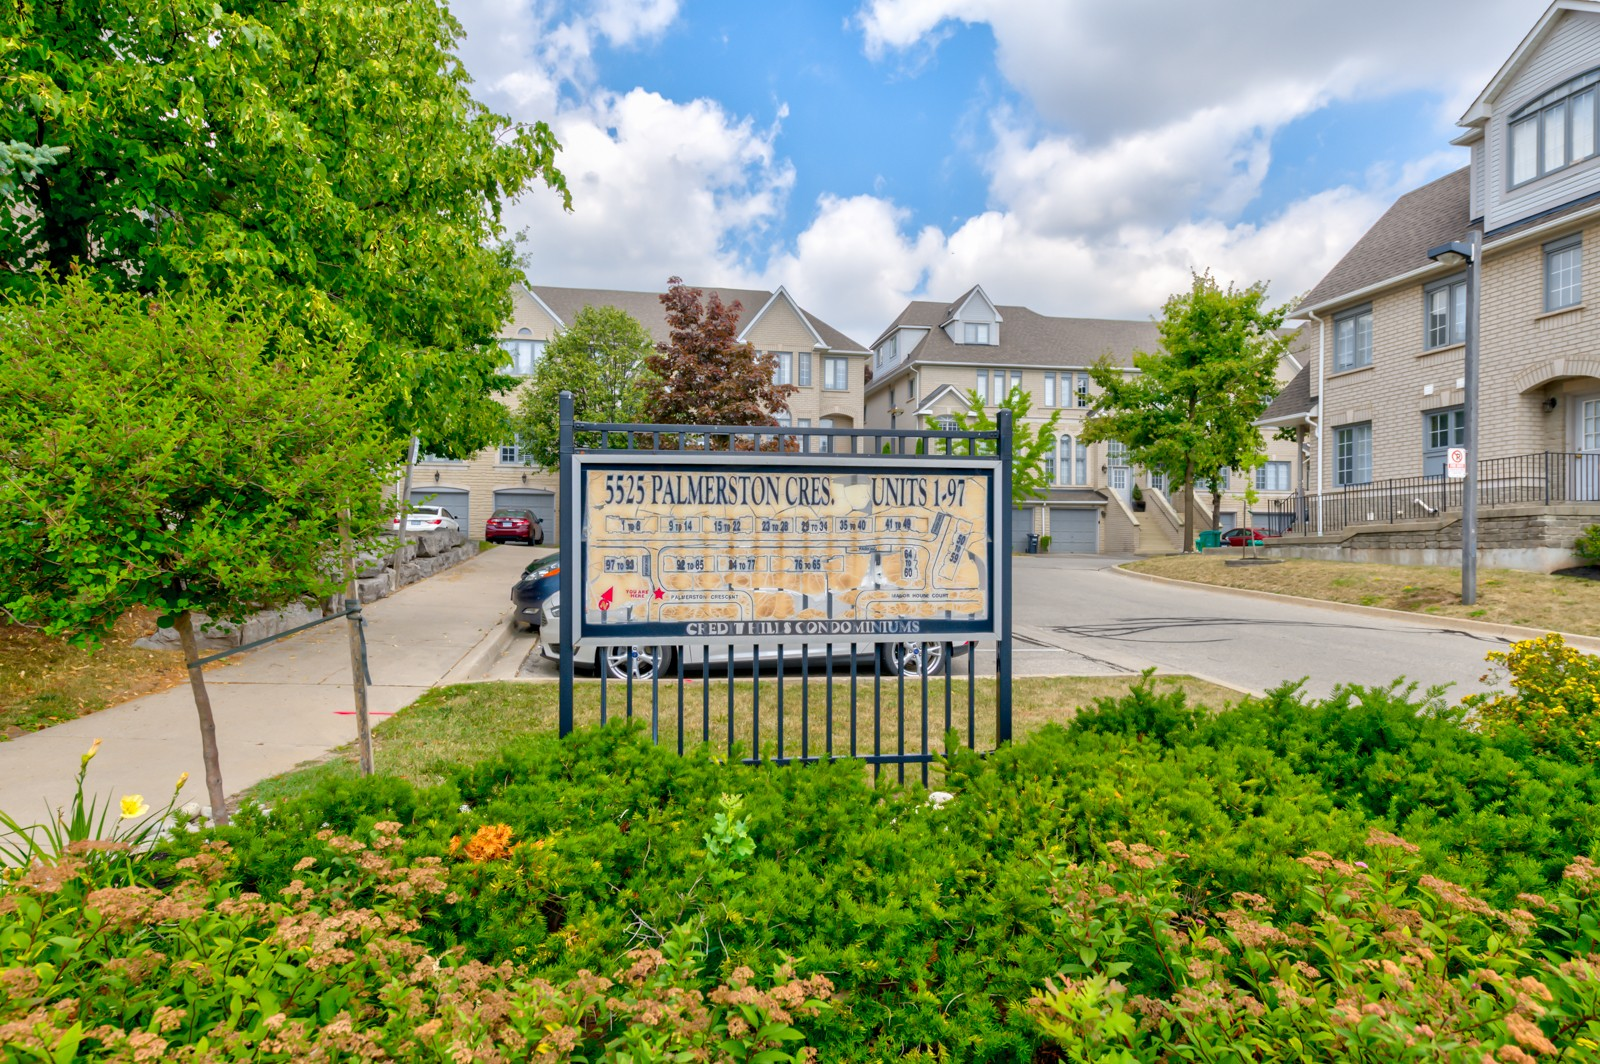 5525 Palmerston Crescent Townhouses at 5225 Palmerston Crescent, Mississauga 1